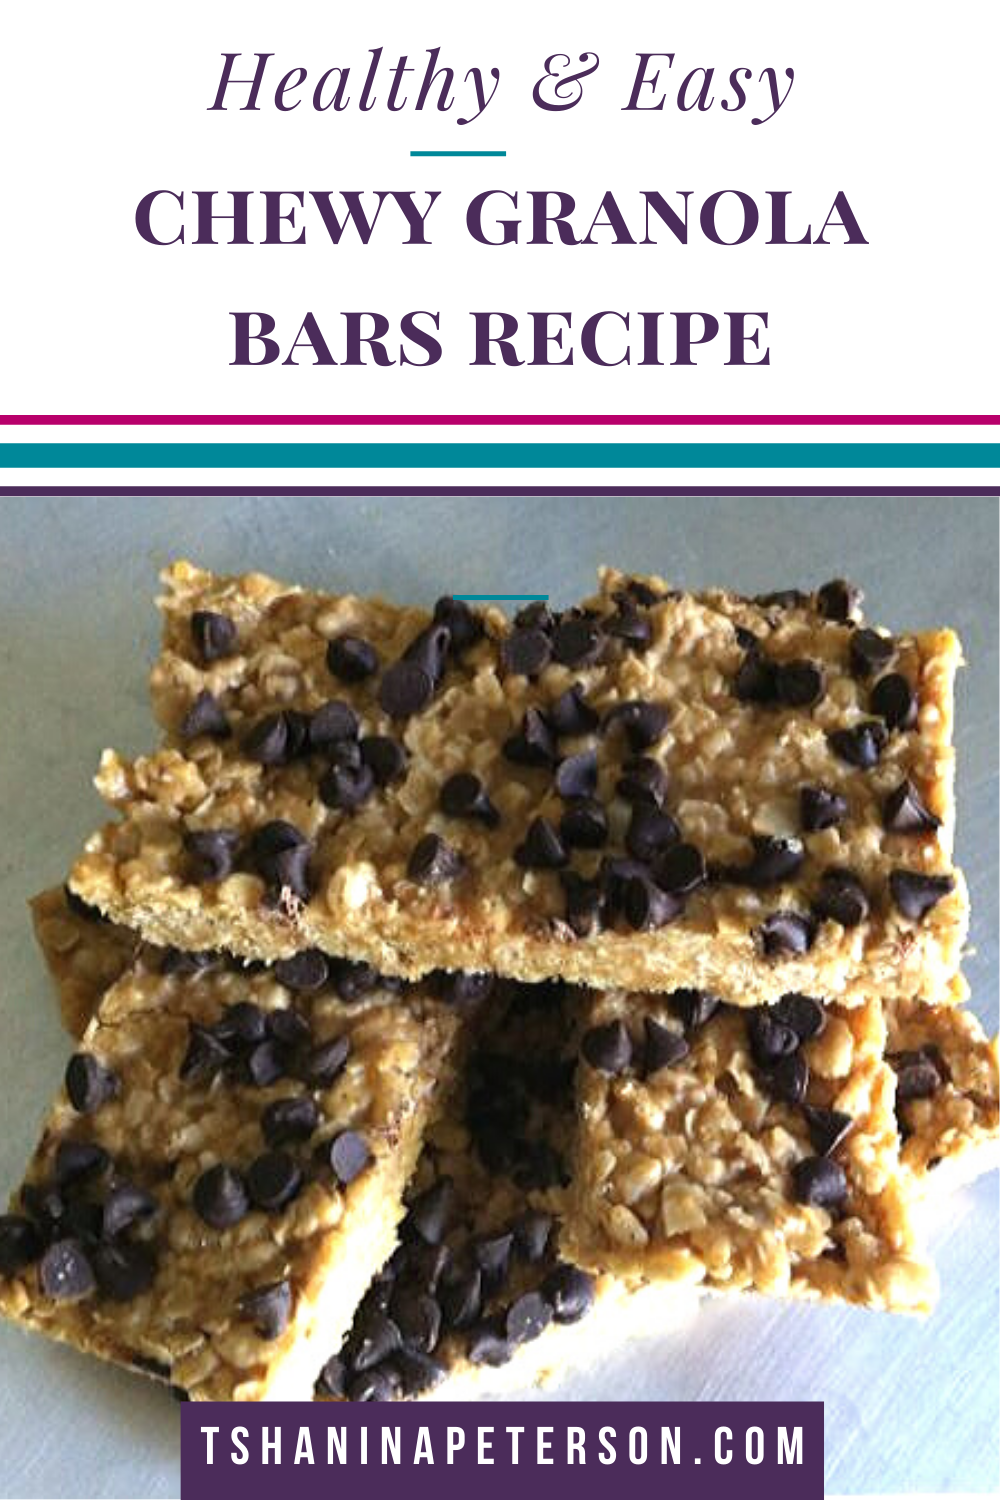 Are you looking for a healthy chewy granola bars recipe that your kids will love? These are simply the best (even better than store bought in my opinion) and my husband loves the crispy crunch from the cereal. Grab your oatmeal (either quick oats or old fashioned will work), honey, coconut oil, peanut butter, rice krispies and chocolate chips and let me show you how to make this super easy no bake recipe!